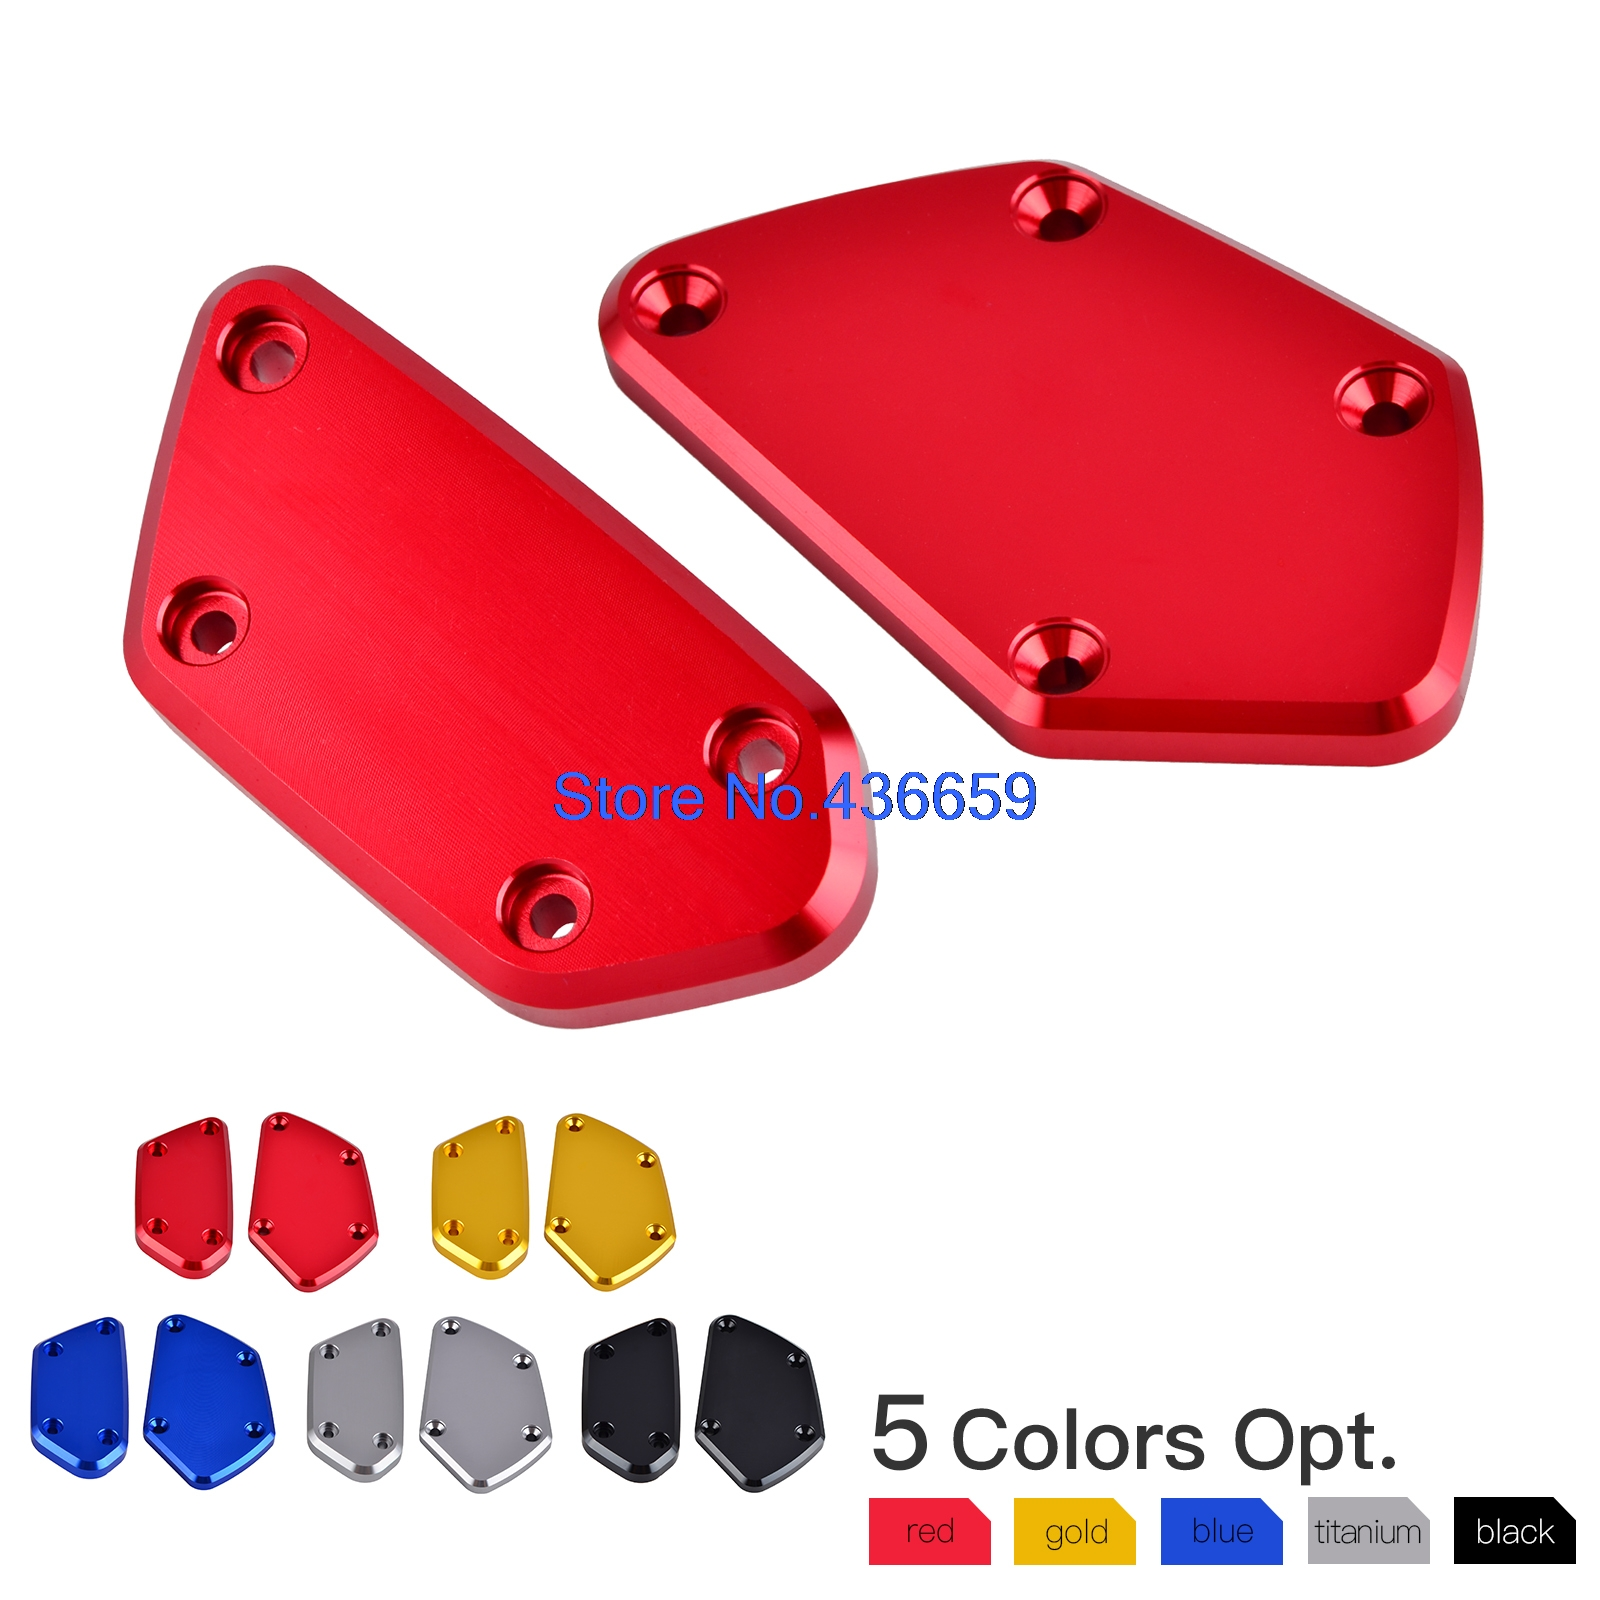 NICECNC Front Brake & Clutch Reservoir Fluid Tank Cap Cover For BMW R1200R R1200RS R1200RT R1200GS K1600 GT/GTL R NineT